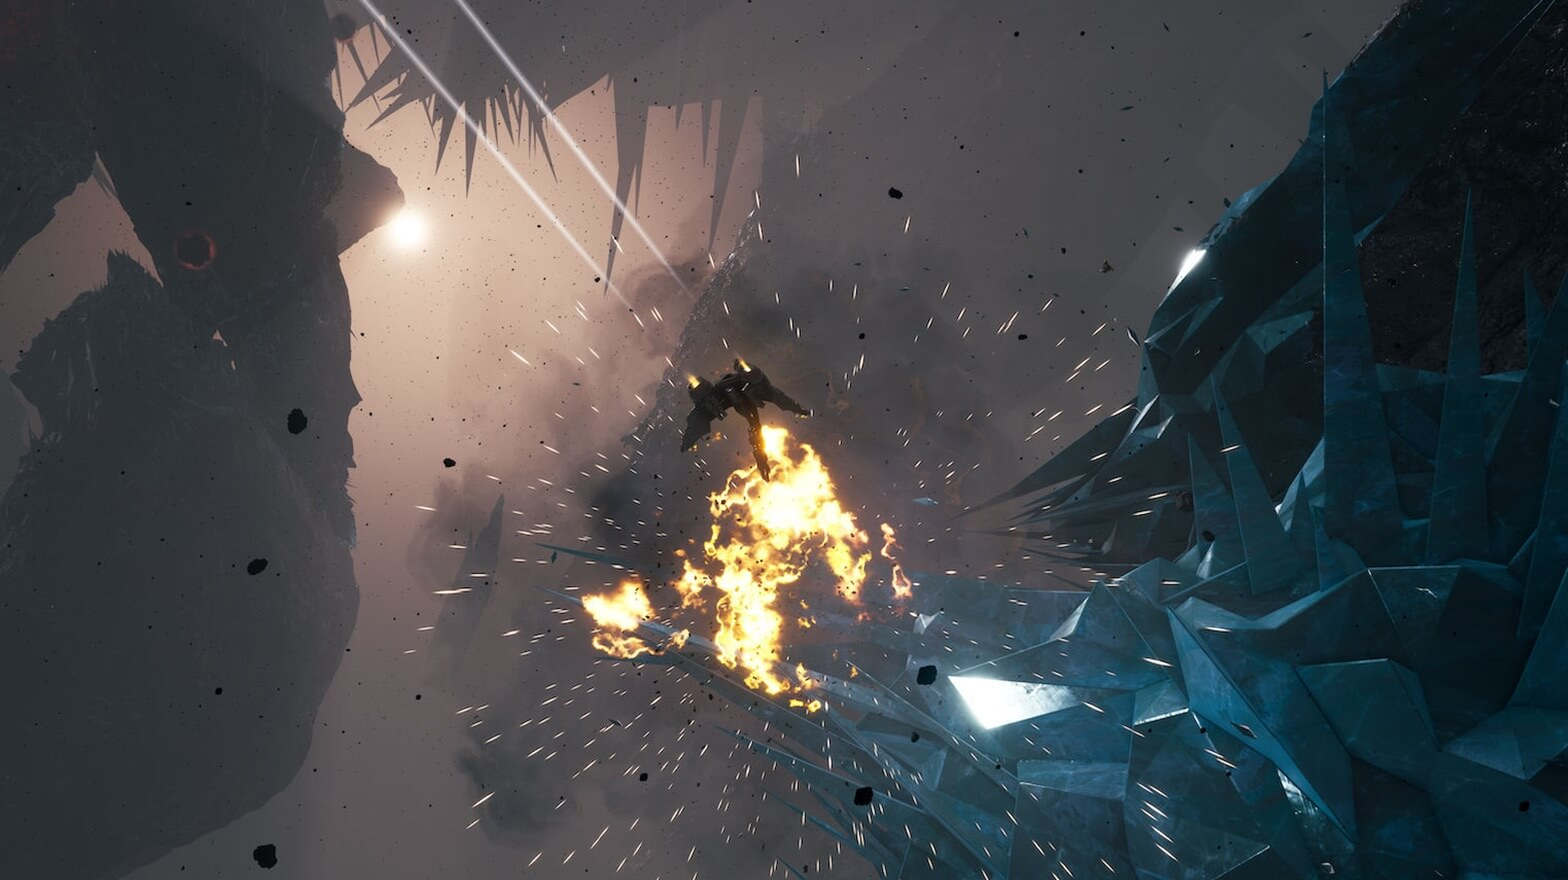 A spaceship in a battle with an explosion in the middle of the image